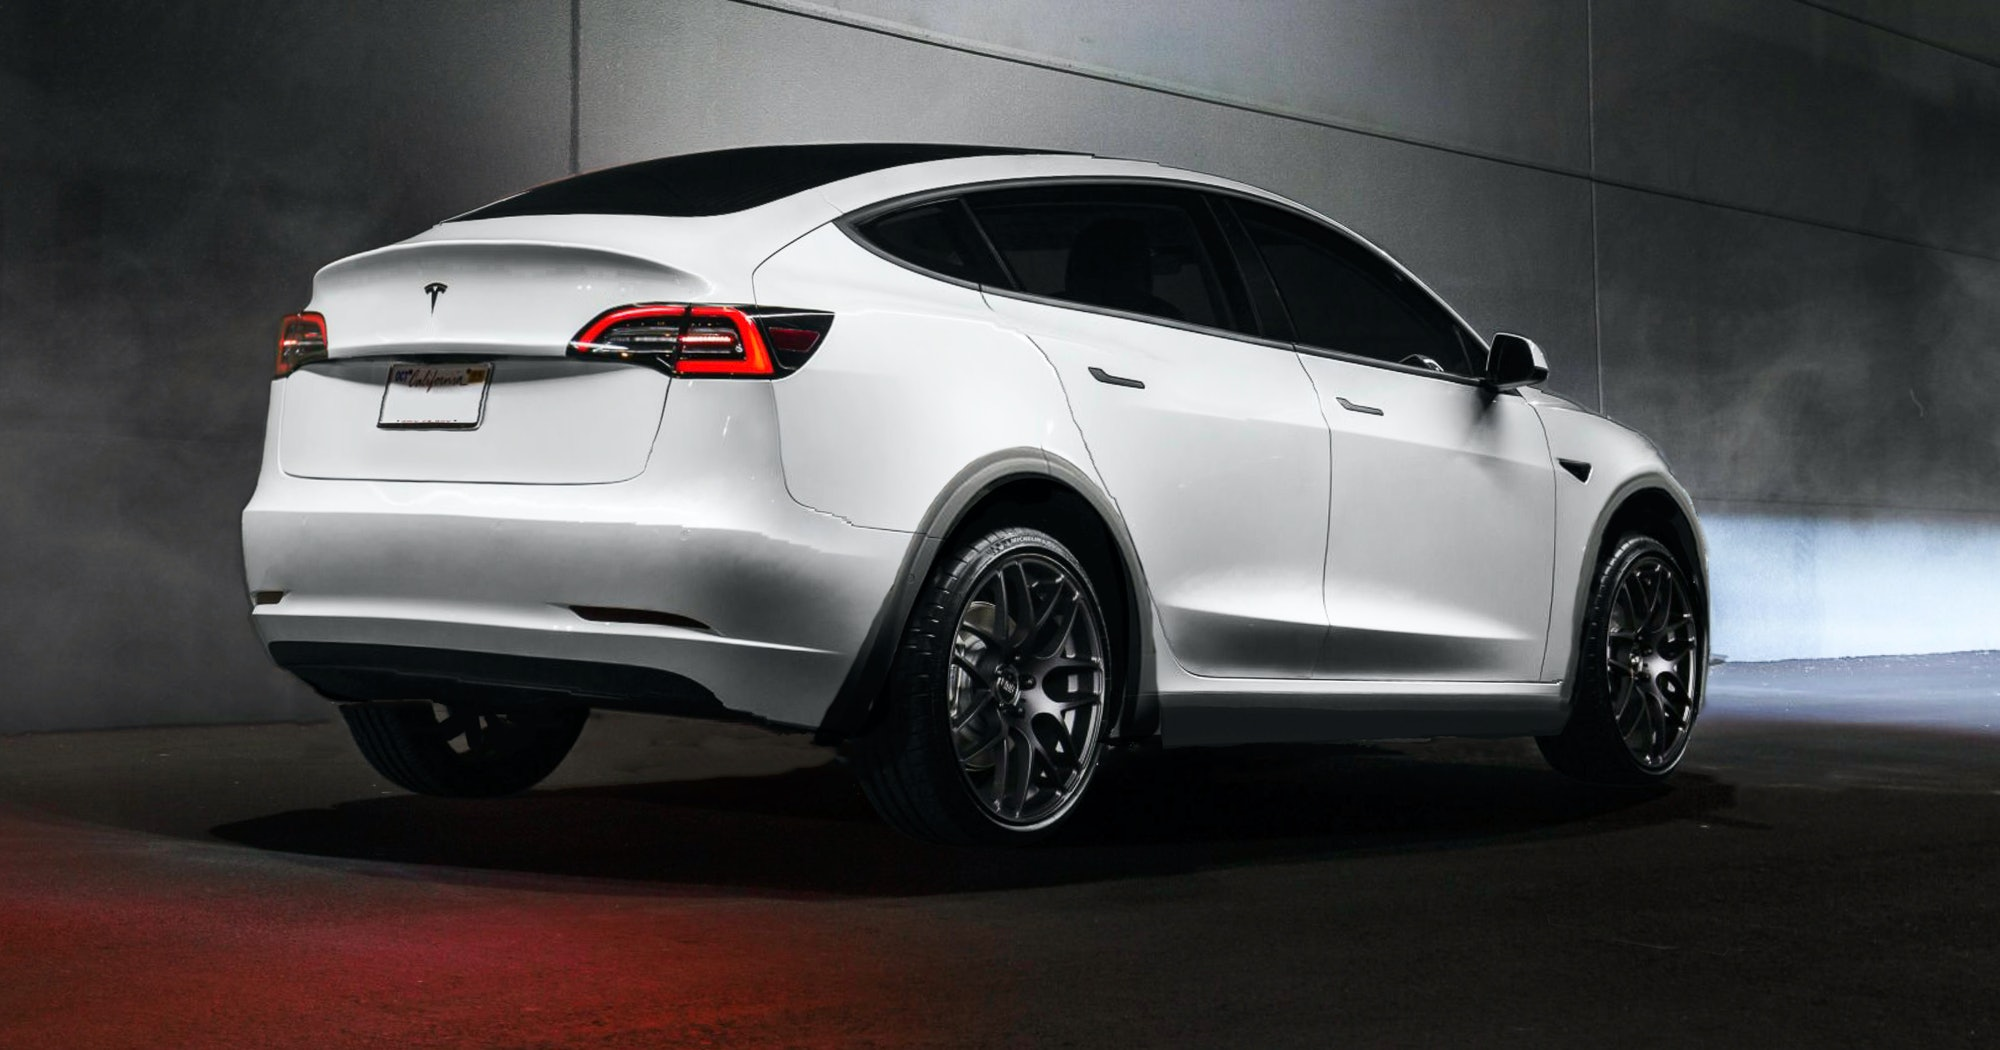 The Model Y concept from the rear.